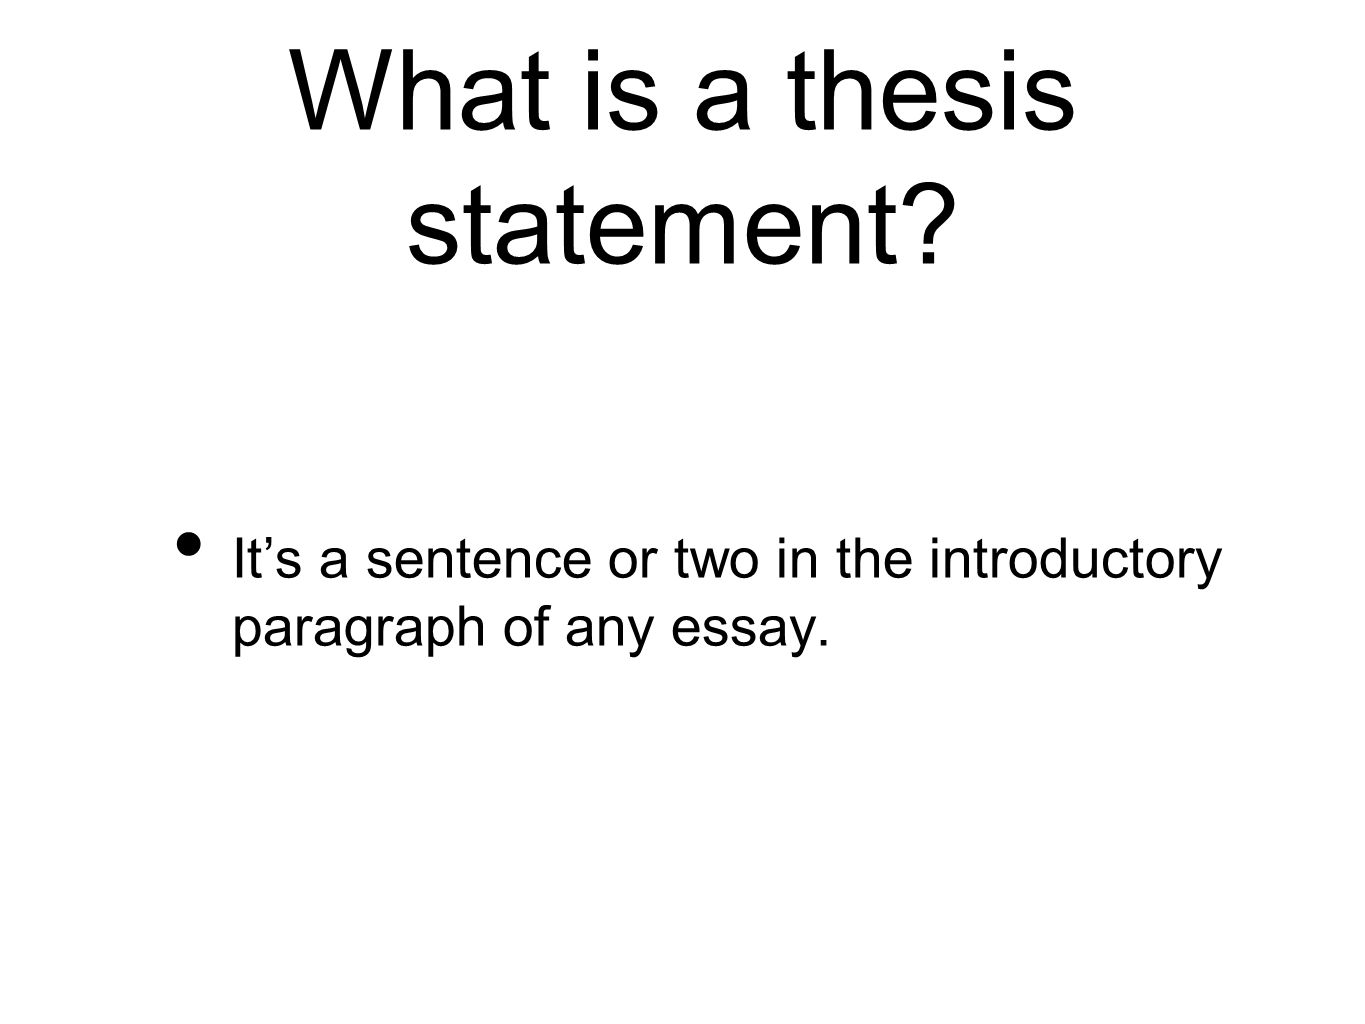 how to create a thesis